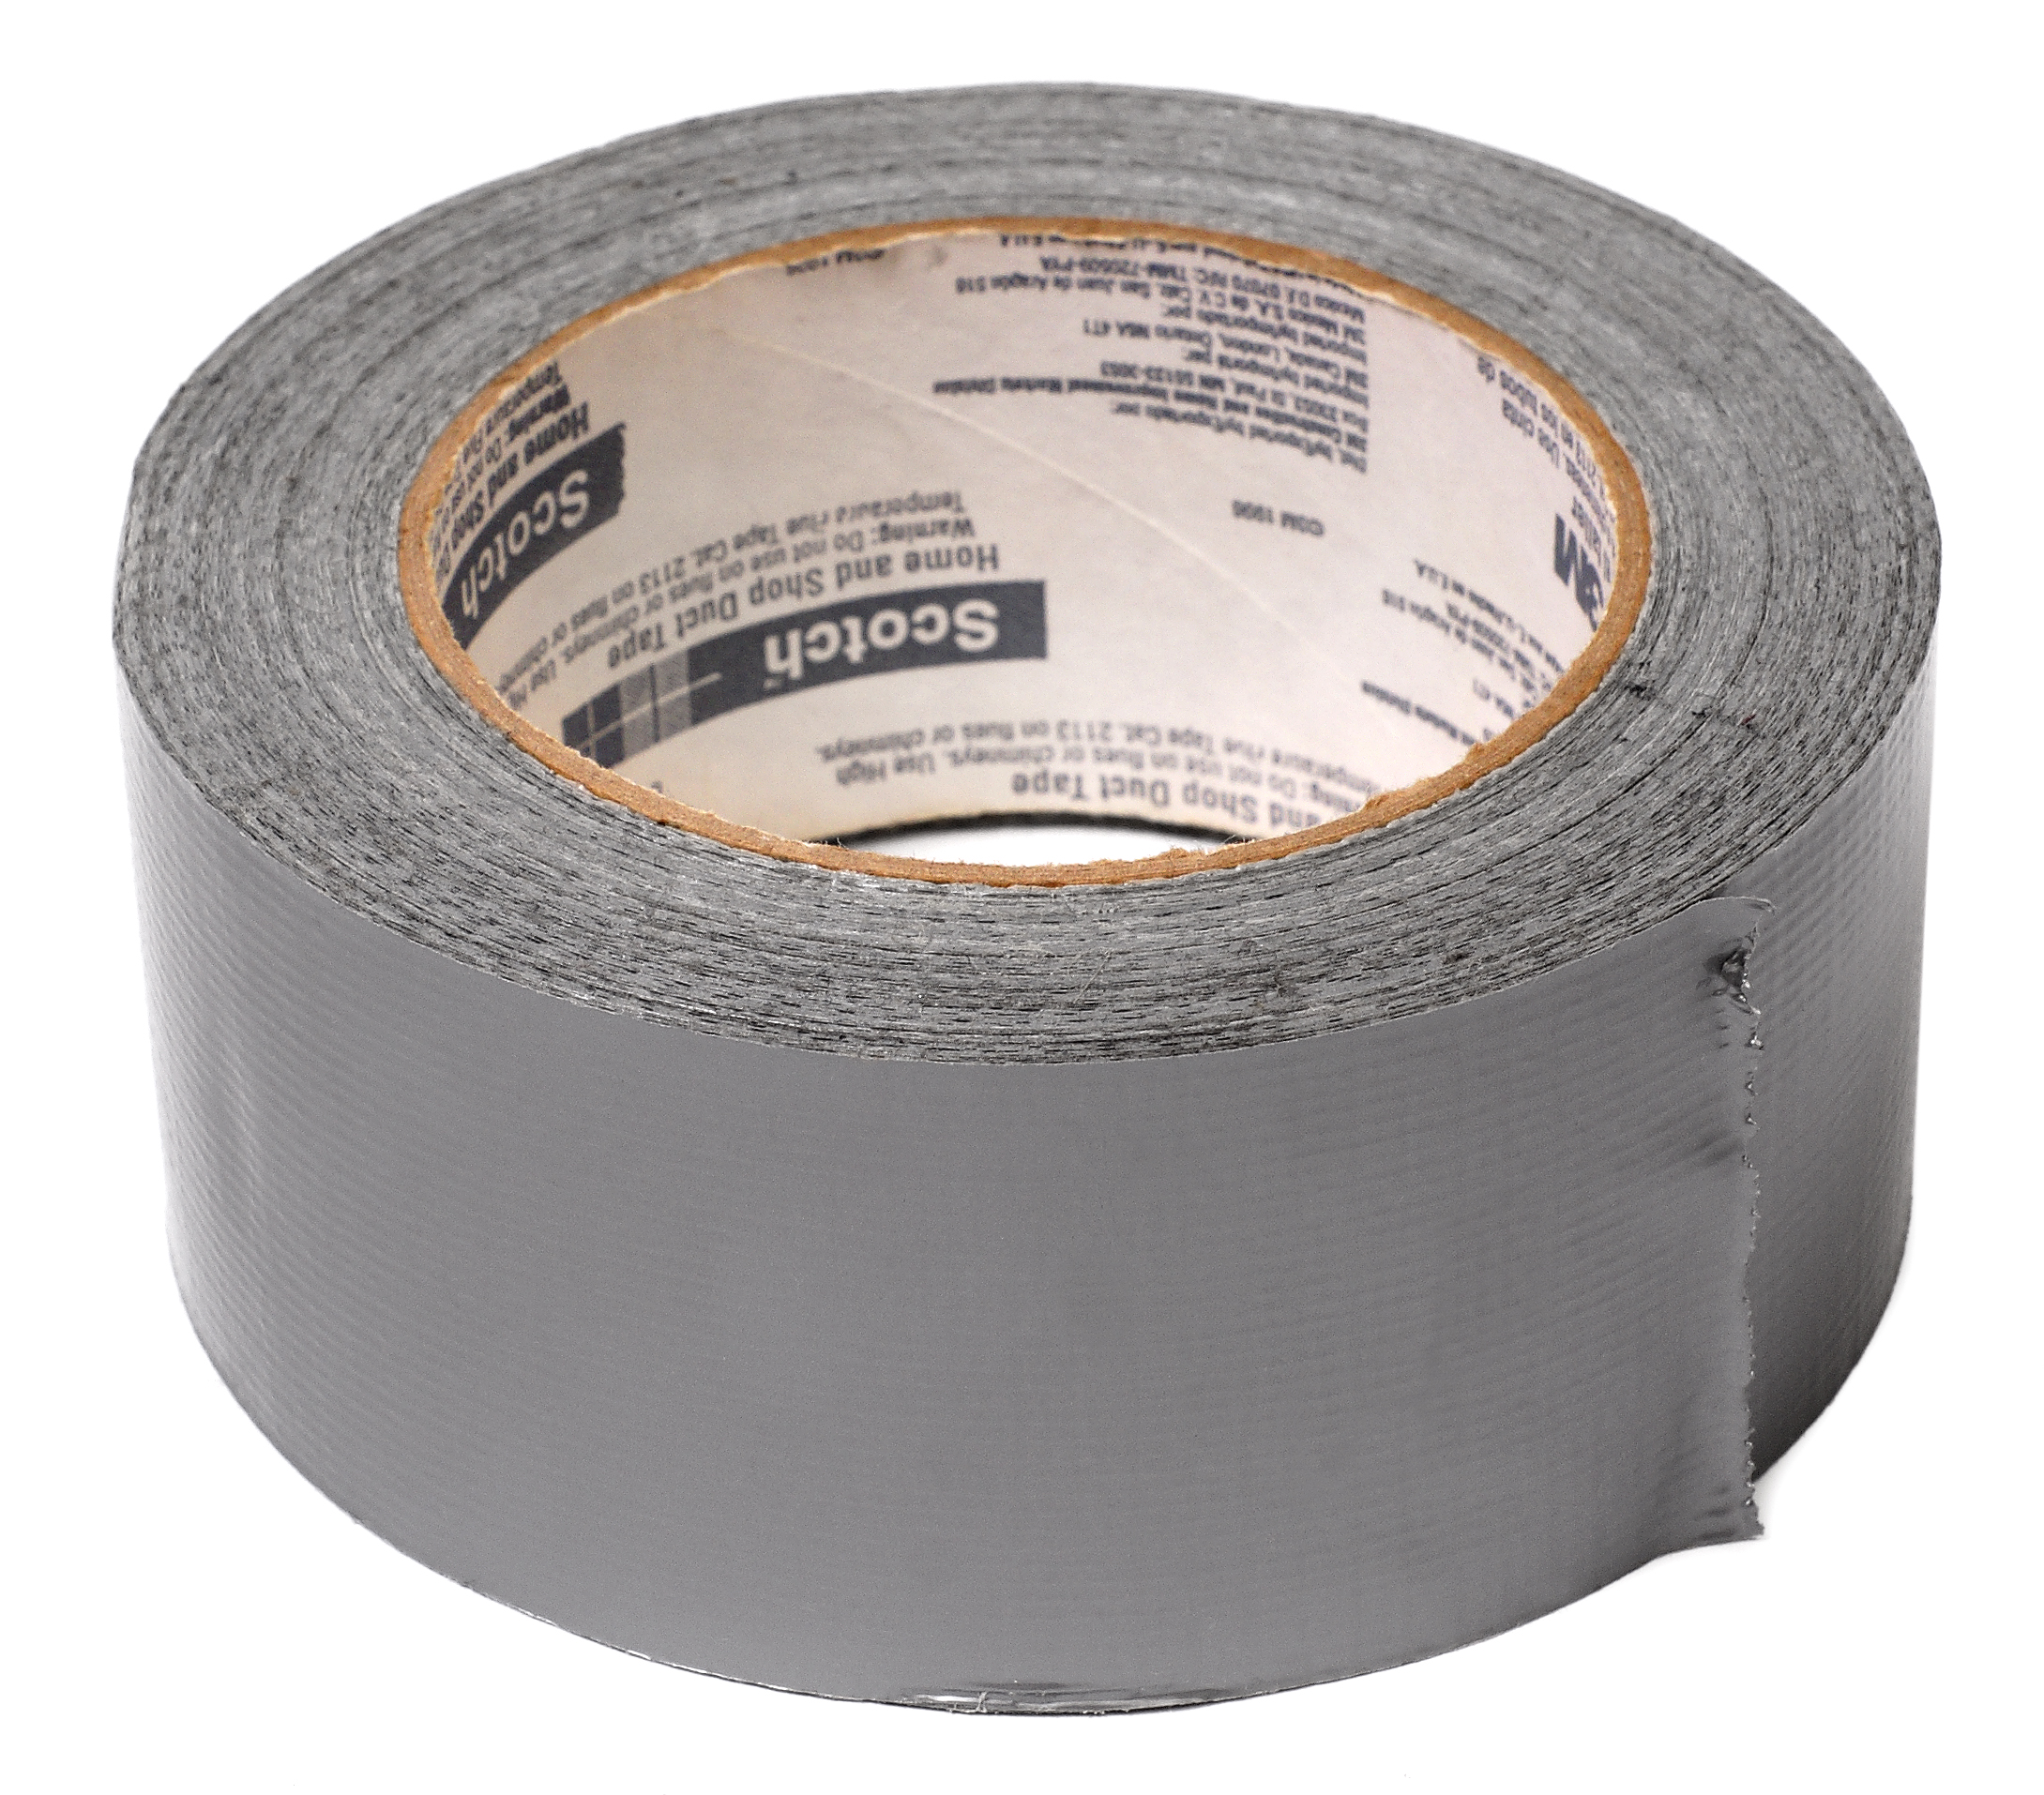 https://upload.wikimedia.org/wikipedia/commons/8/89/Duct-tape.jpg